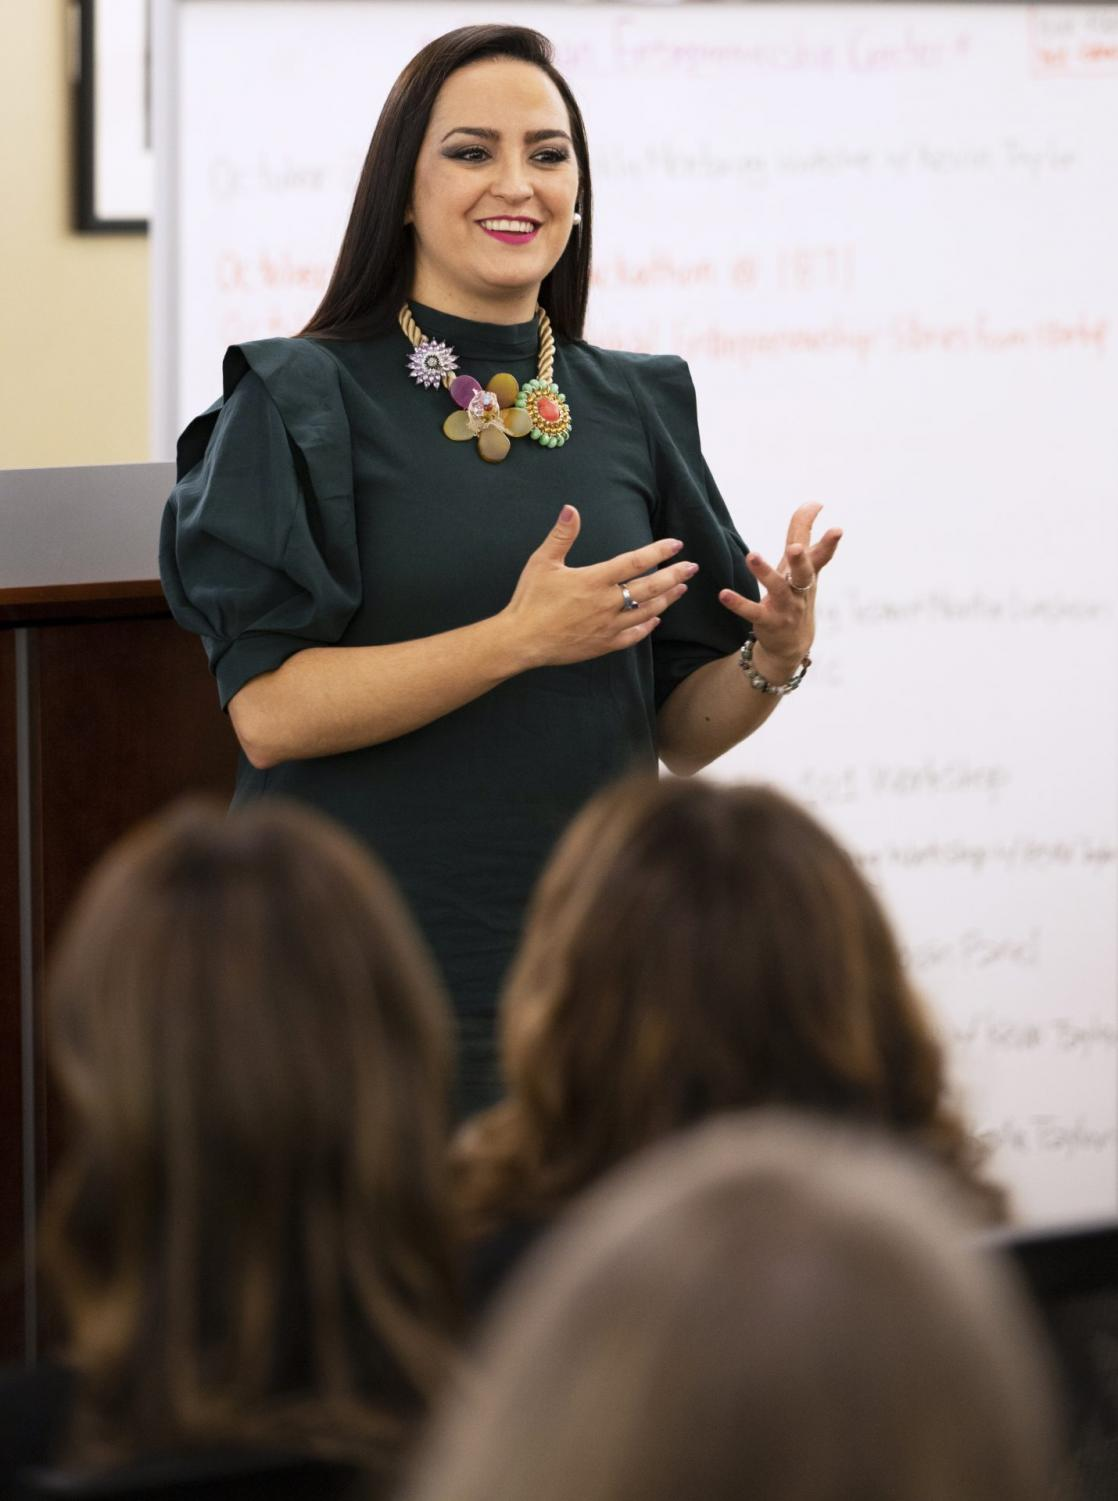 Keynote speaker, Jacqueline Camacho-Ruiz talks to students at the Latinx Womyn in Leadership and Entrepreneurship event on Tuesday at the Coleman Entrepreneurship Center. Jacqueline spoke about giving yourself the power to push yourself to success.